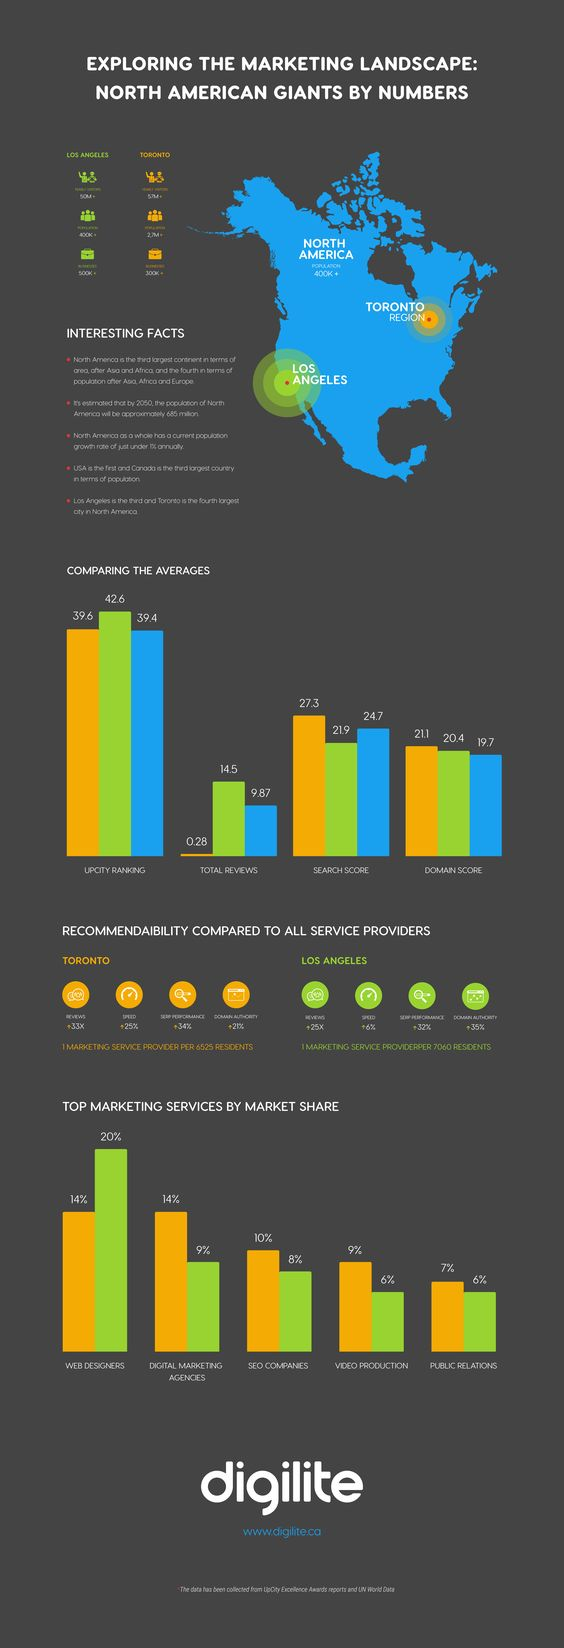 consumer insights to digital marketing landscape